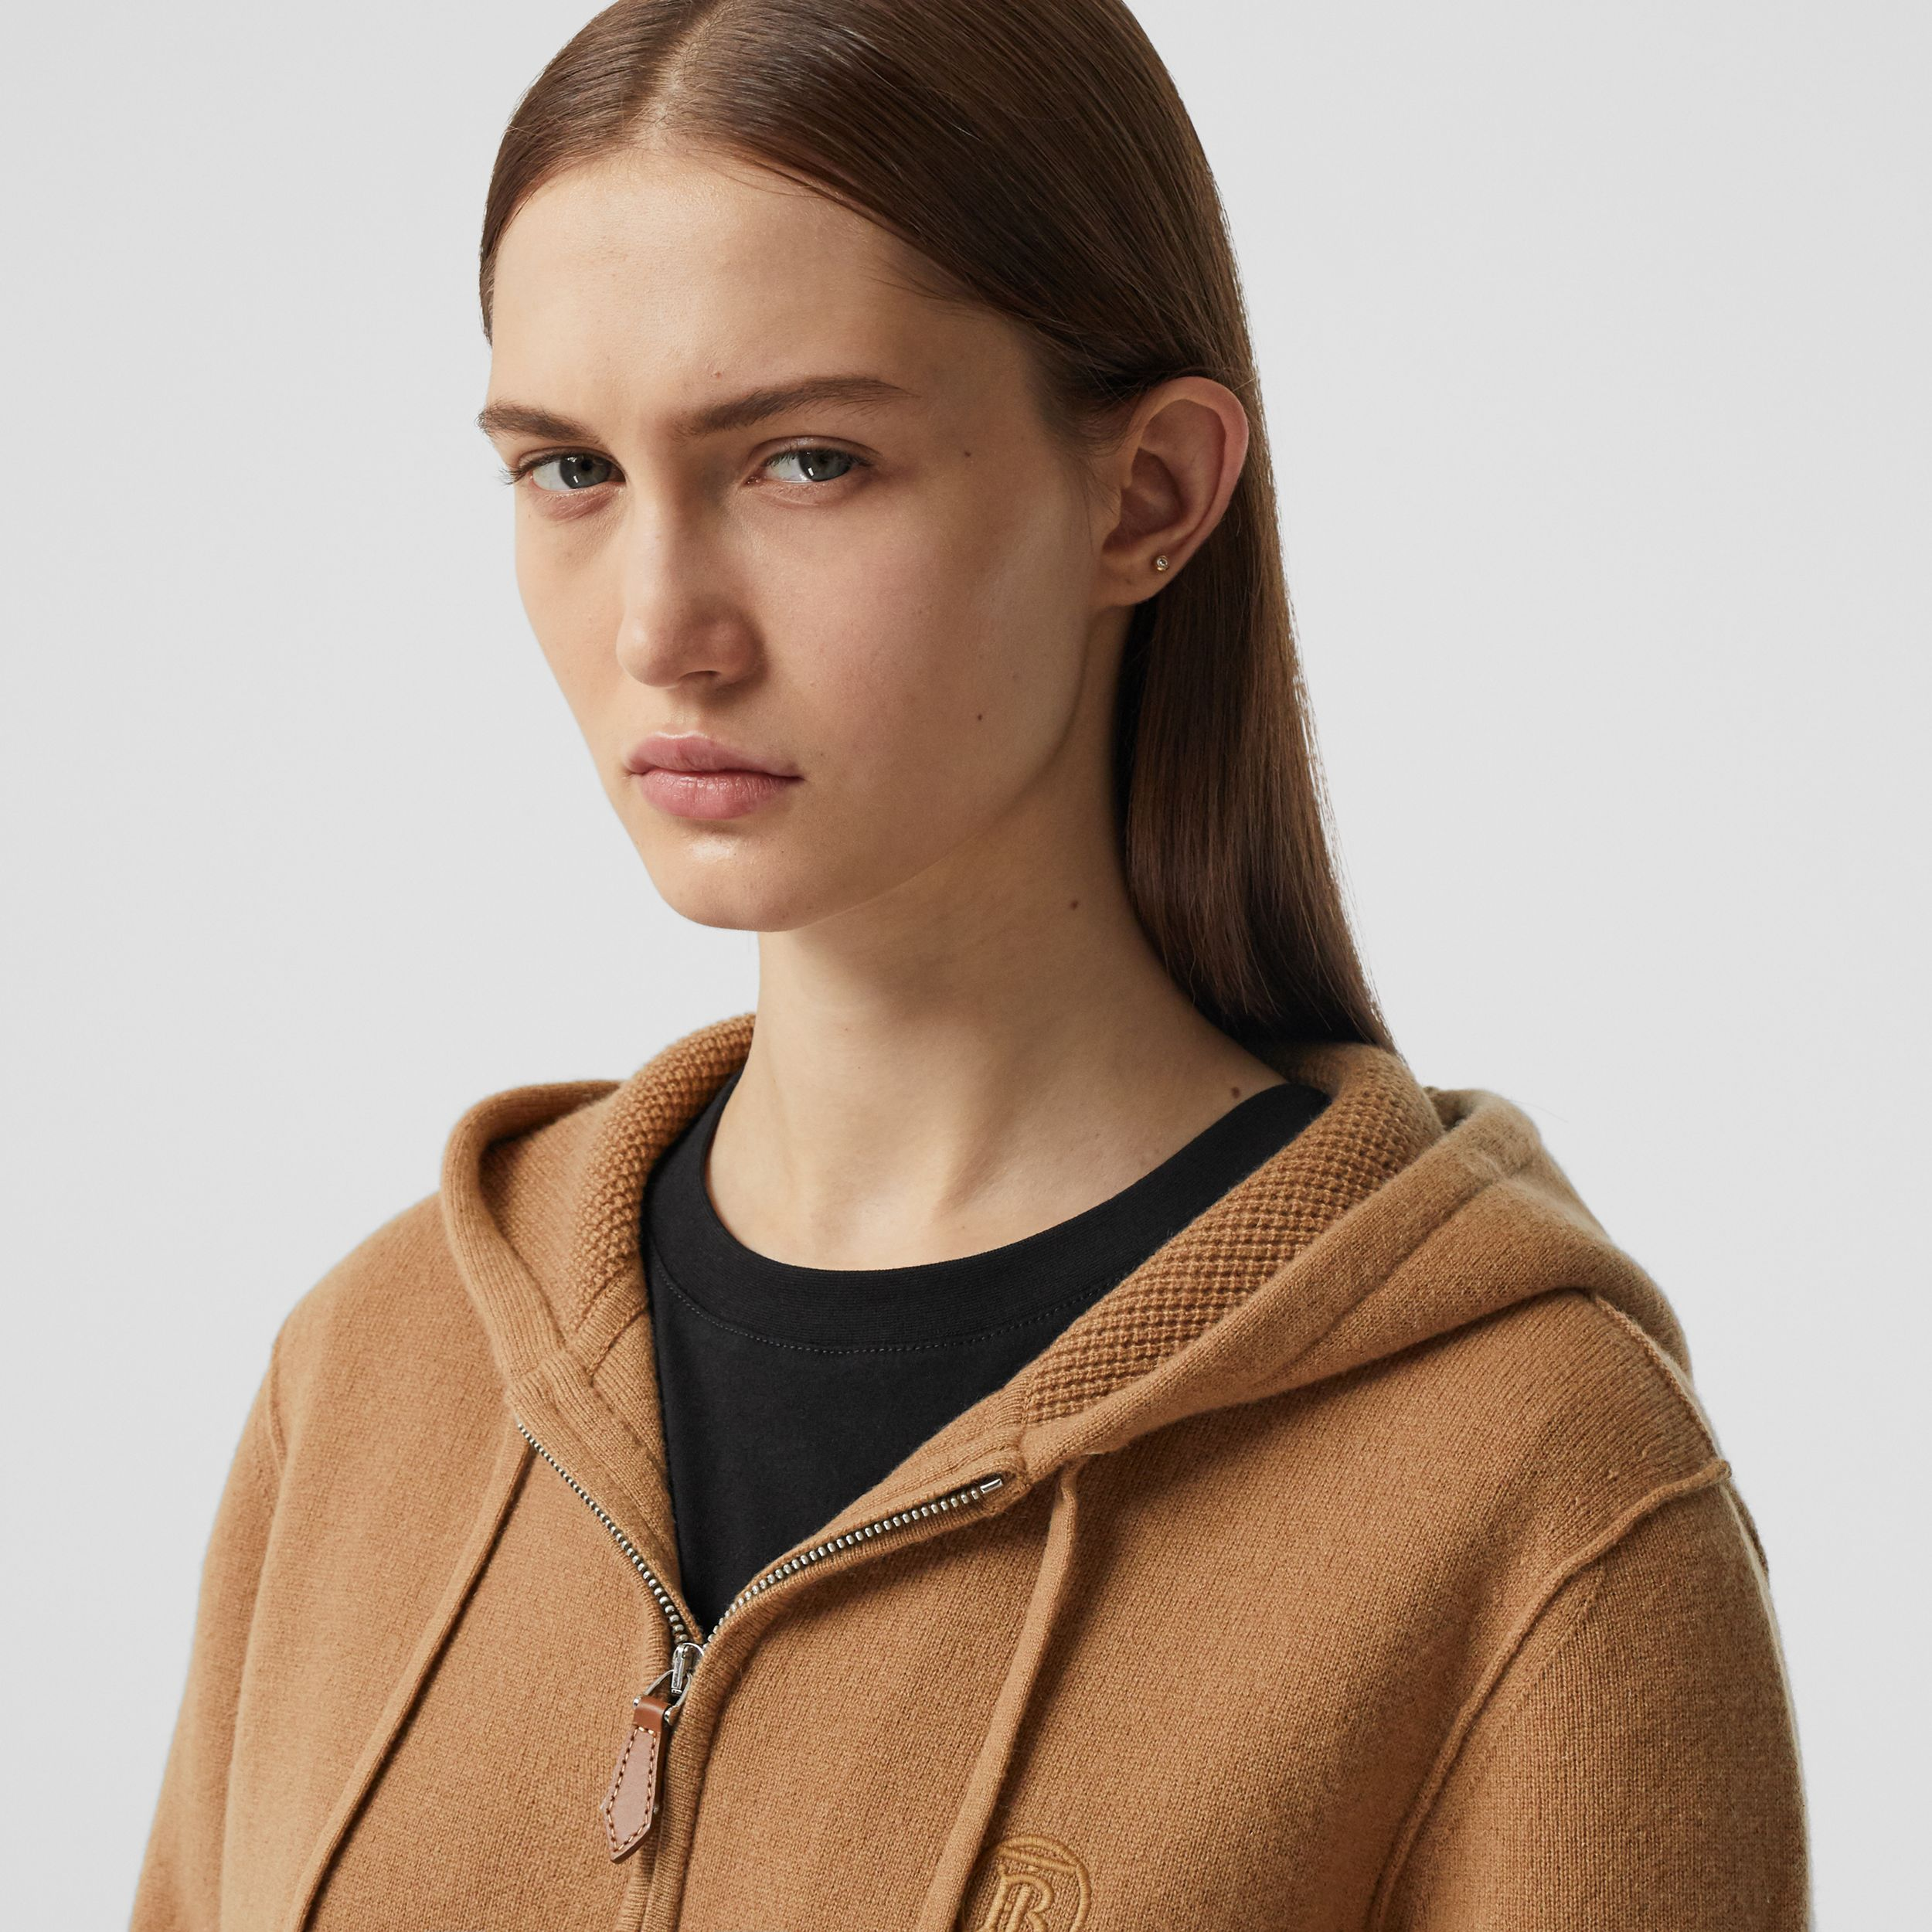 Monogram Motif Cashmere Blend Hooded Top in Camel - Women | Burberry Canada - 2